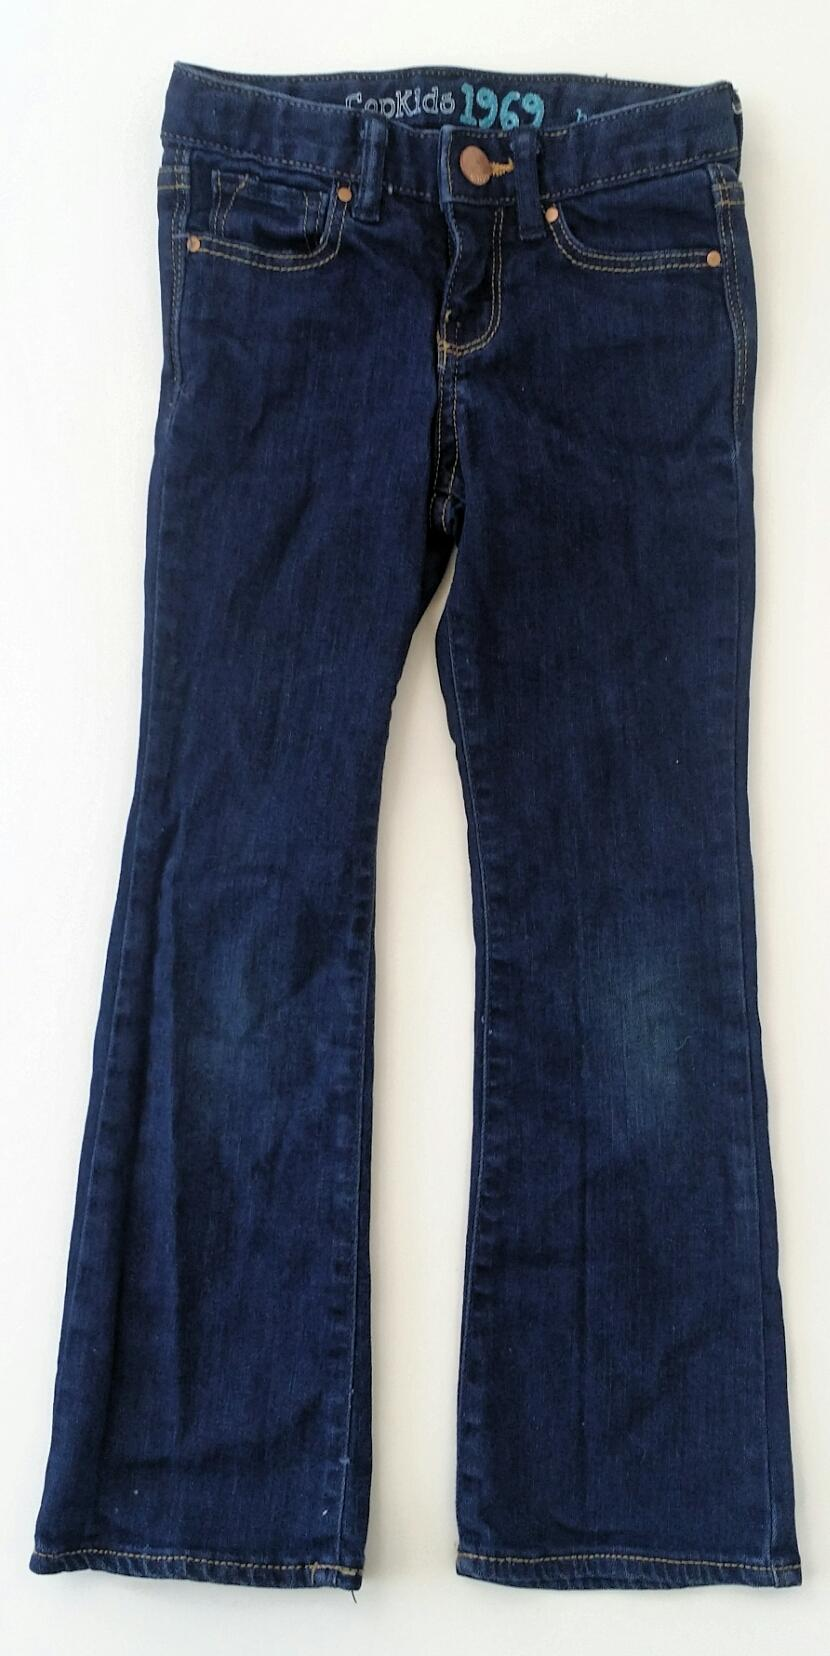 Gap-5-YEARS-Boot-Cut-Jeans_2154319A.jpg